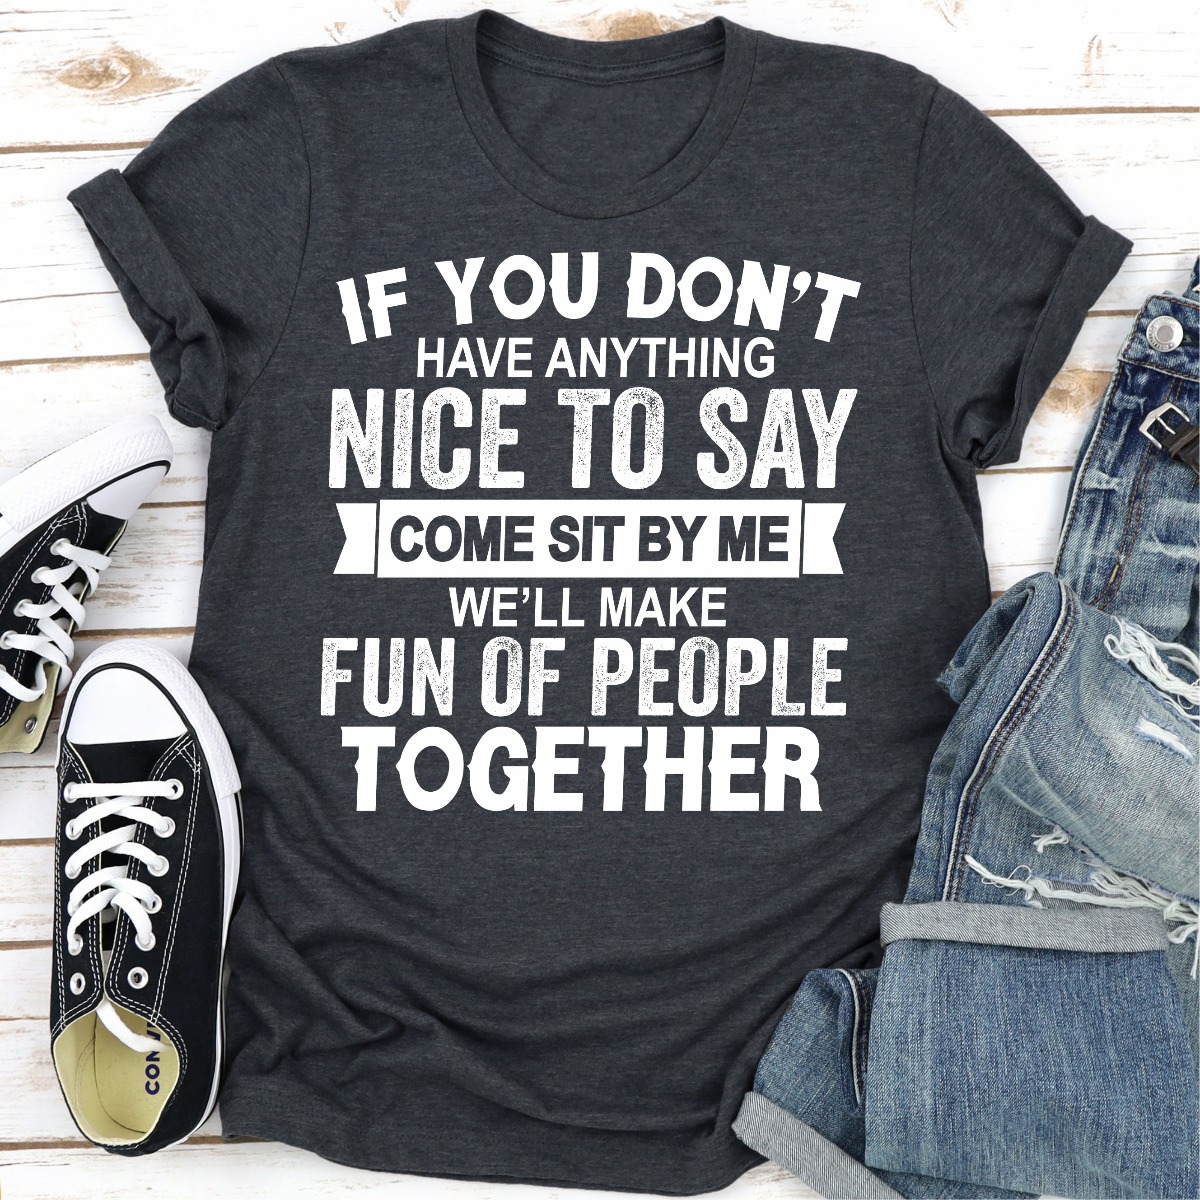 If You Don't Have Anything Nice To Say (Dark Heather / L)